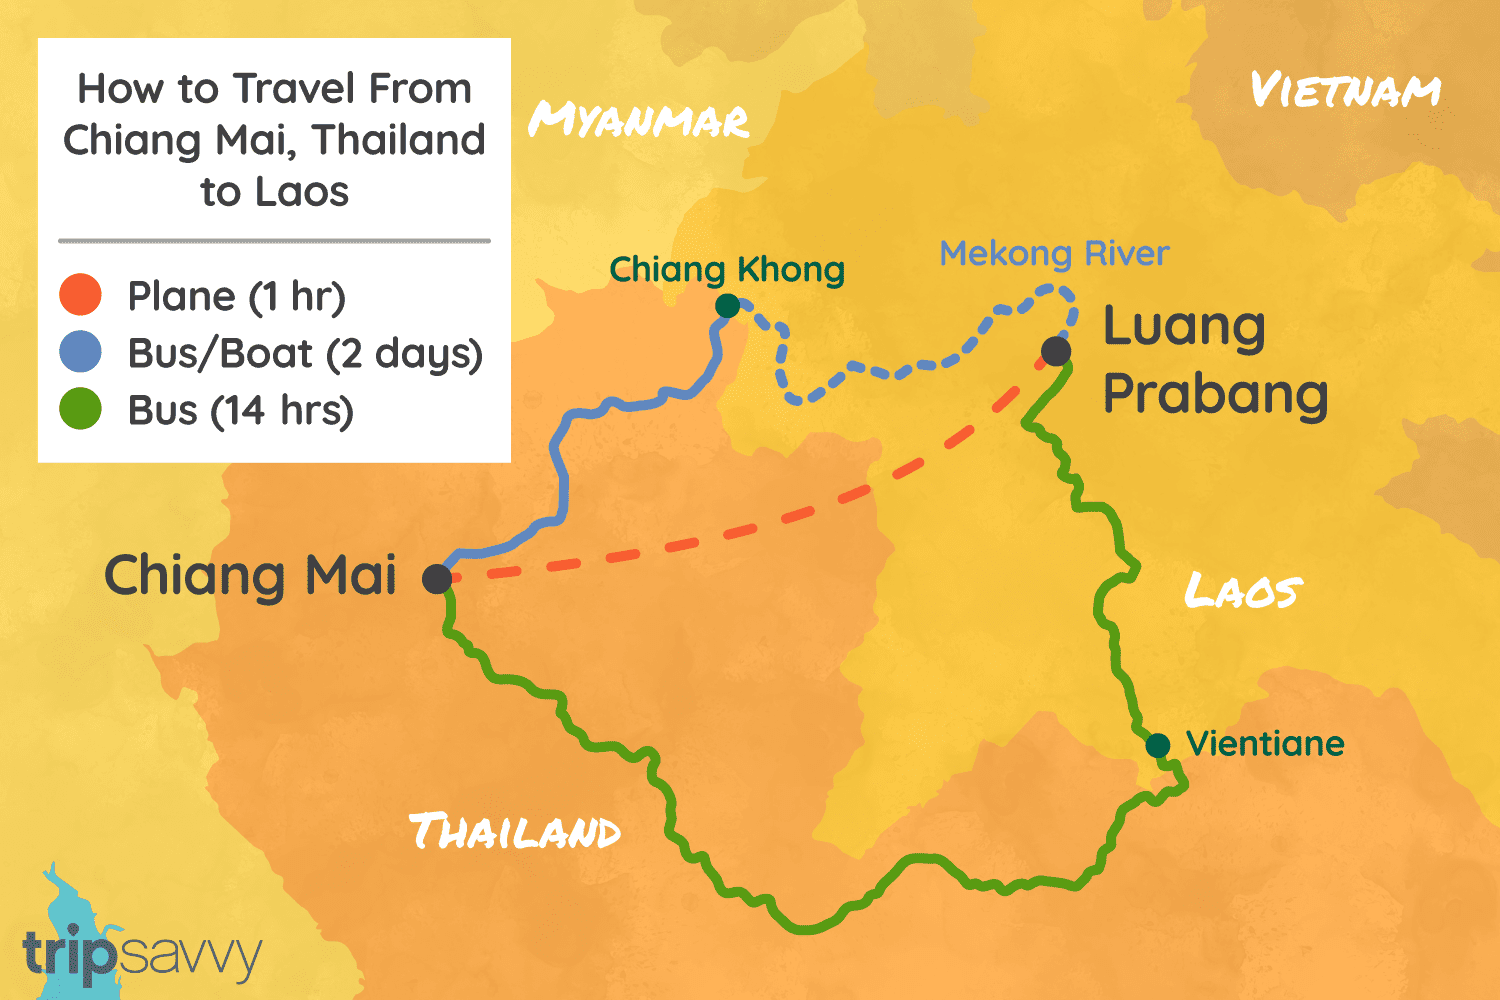 How to Travel From Chiang Mai, Thailand to Laos